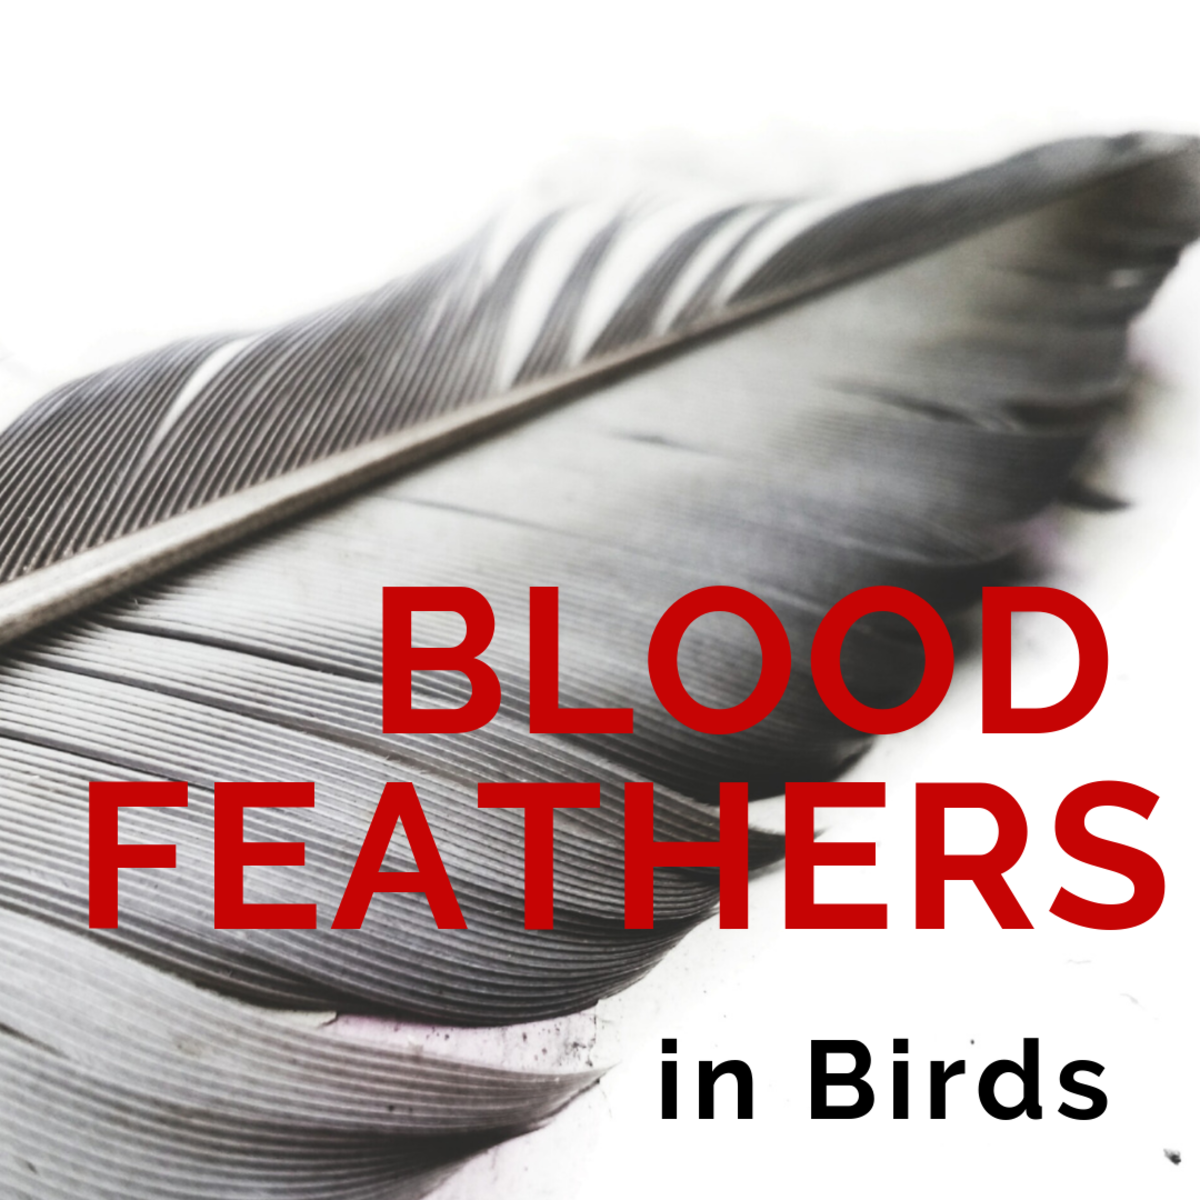 Blood Feathers in Birds: Pulling Feathers vs. Styptic Powder